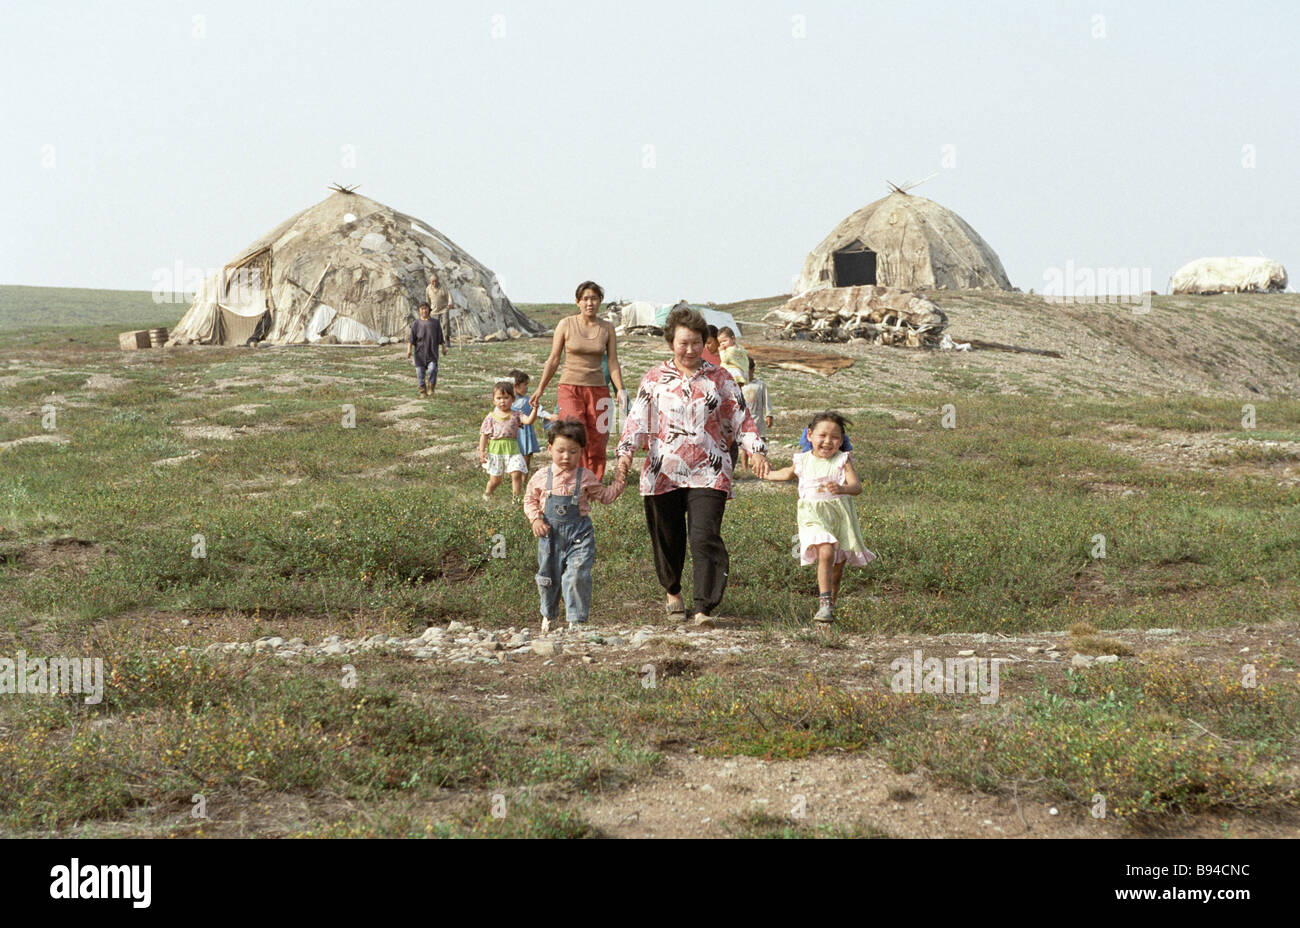 Women and children from the Kanchalan village going to meet a helicopter with visitors - Stock Image